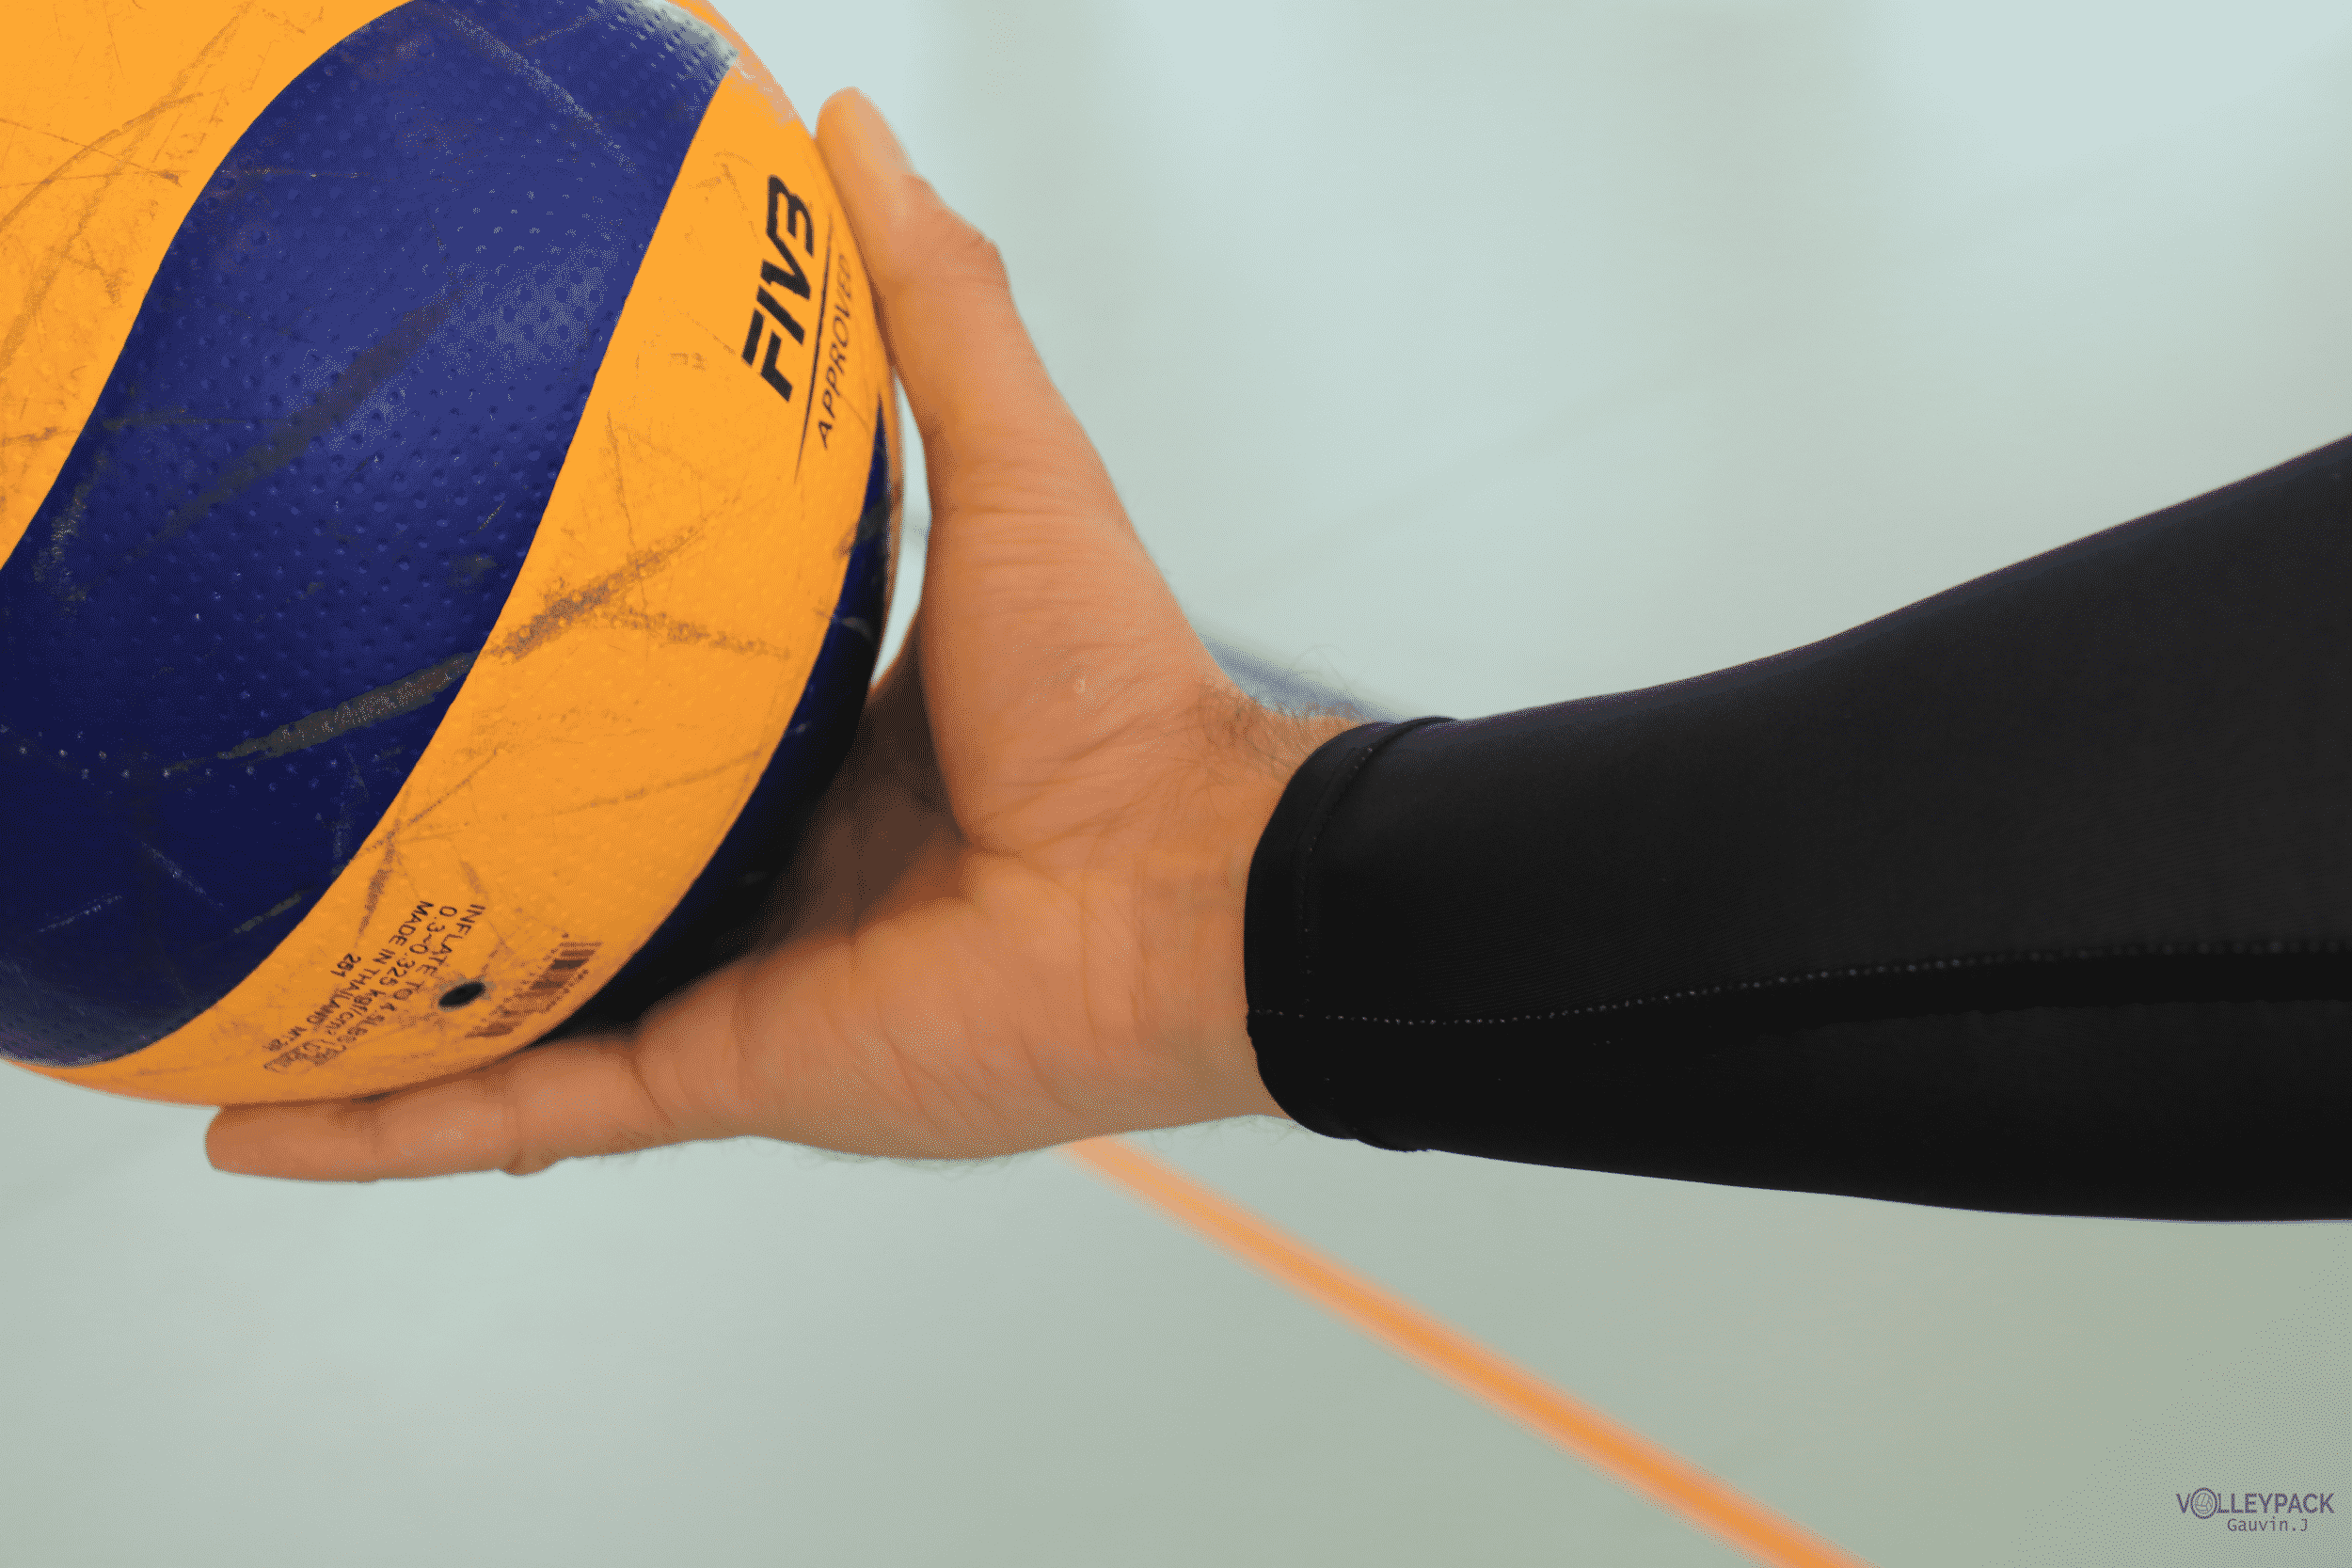 test-volleypack-manchons-volley-ninesquared-arm-sleeves-2019-14